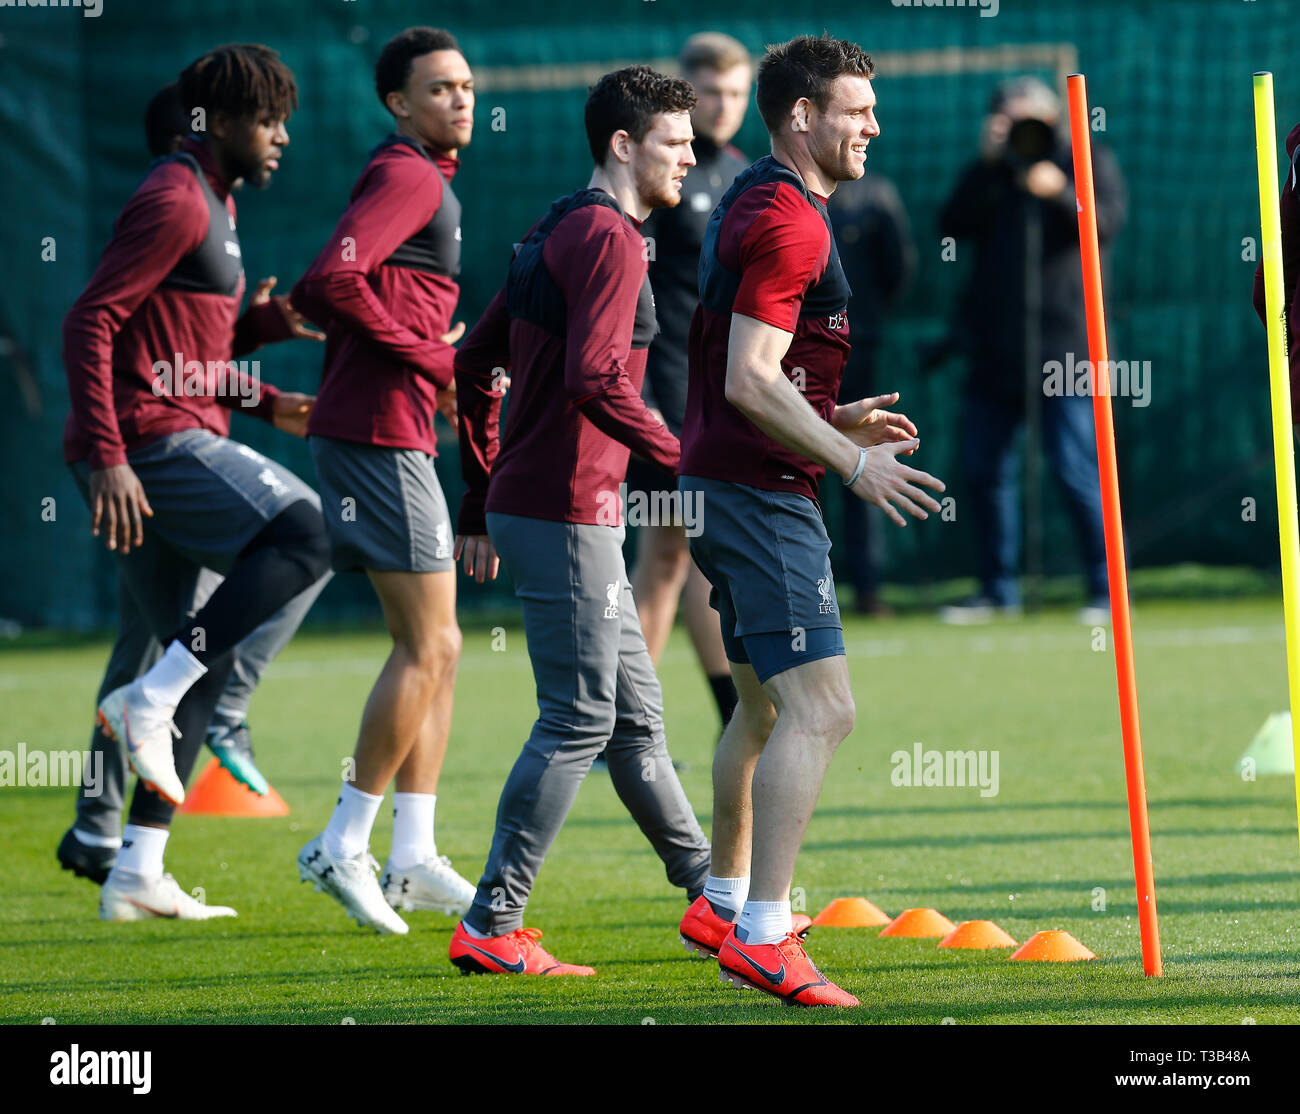 Melwood, Liverpool, UK  8th Apr, 2019  Liverpool training session